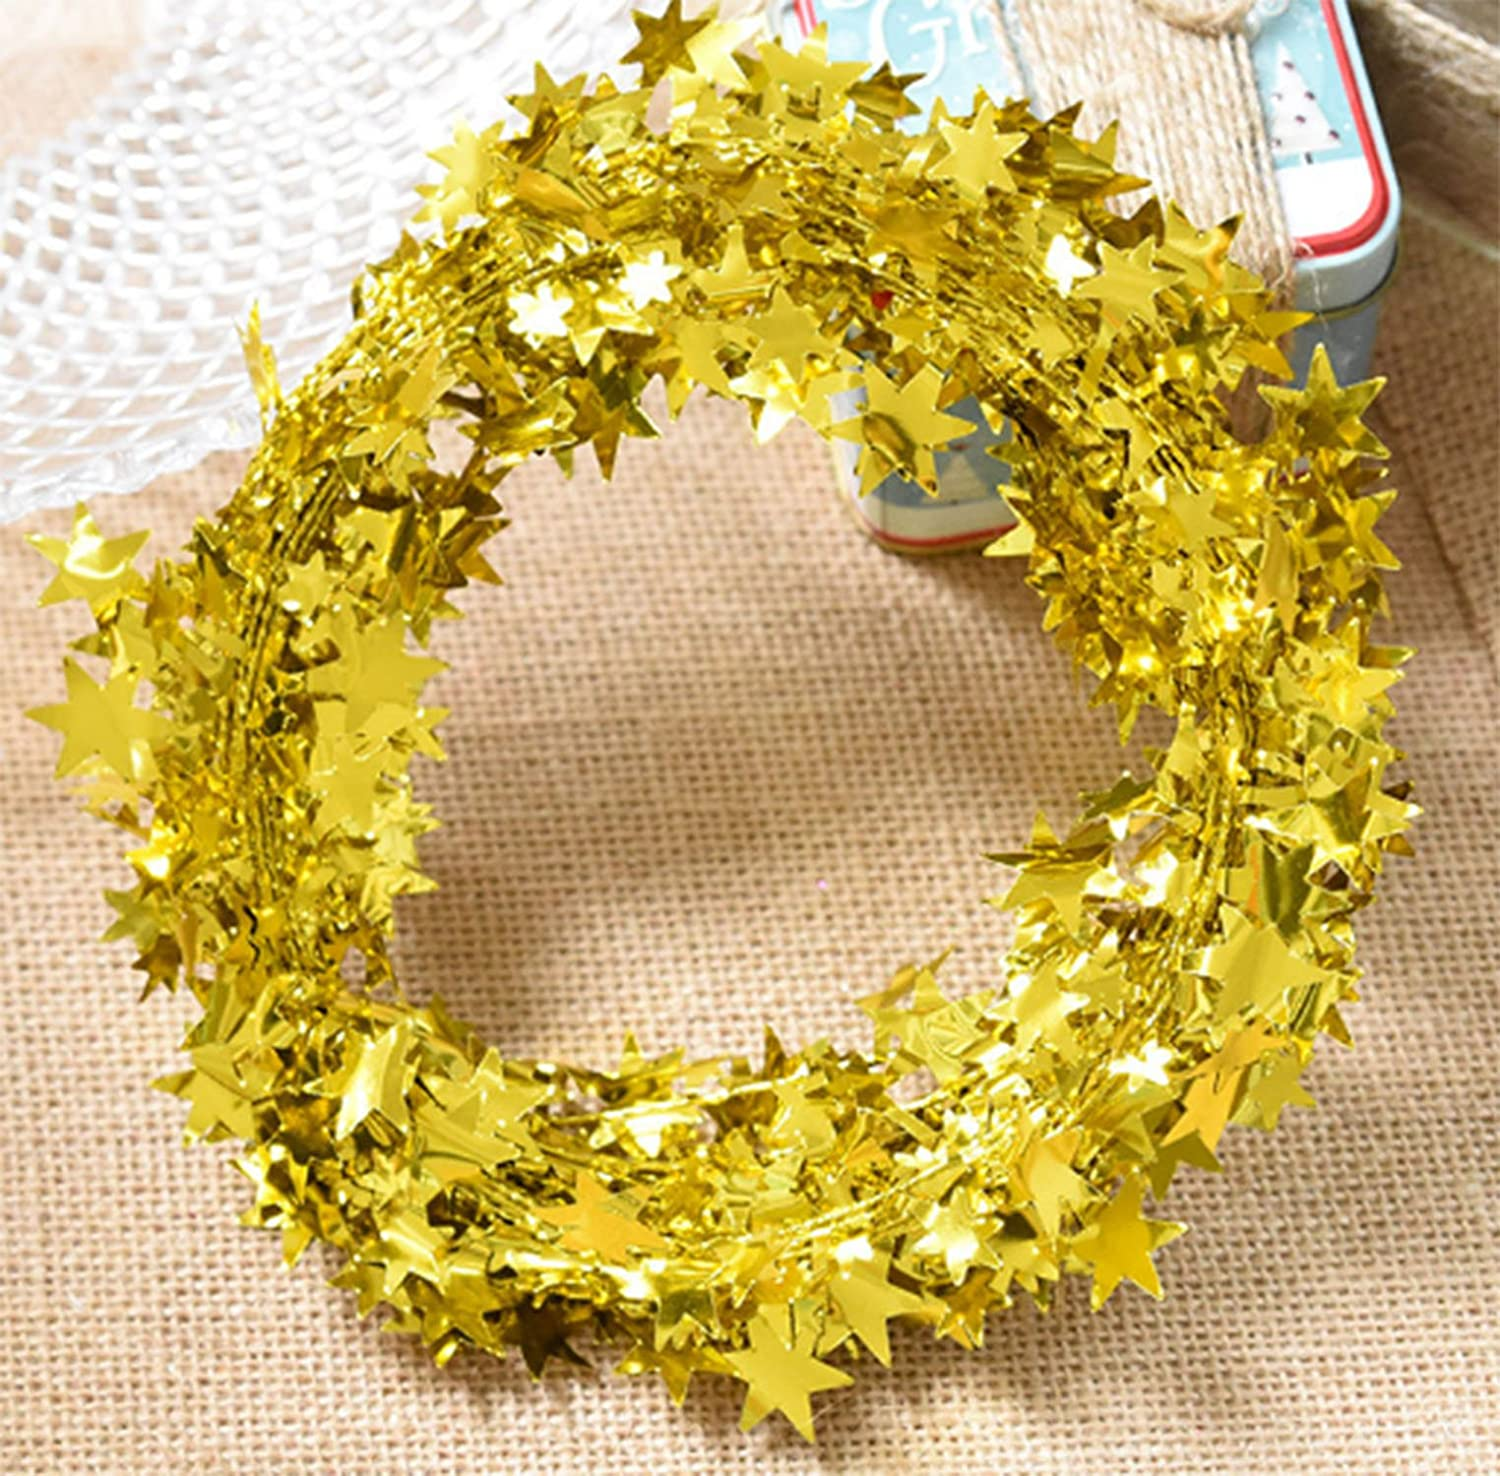 Yesier 25 FT Star Tinsel Garlands with Wire Christmas Tree Party Decoration Festive Ornament, 2 Pack (Gold)